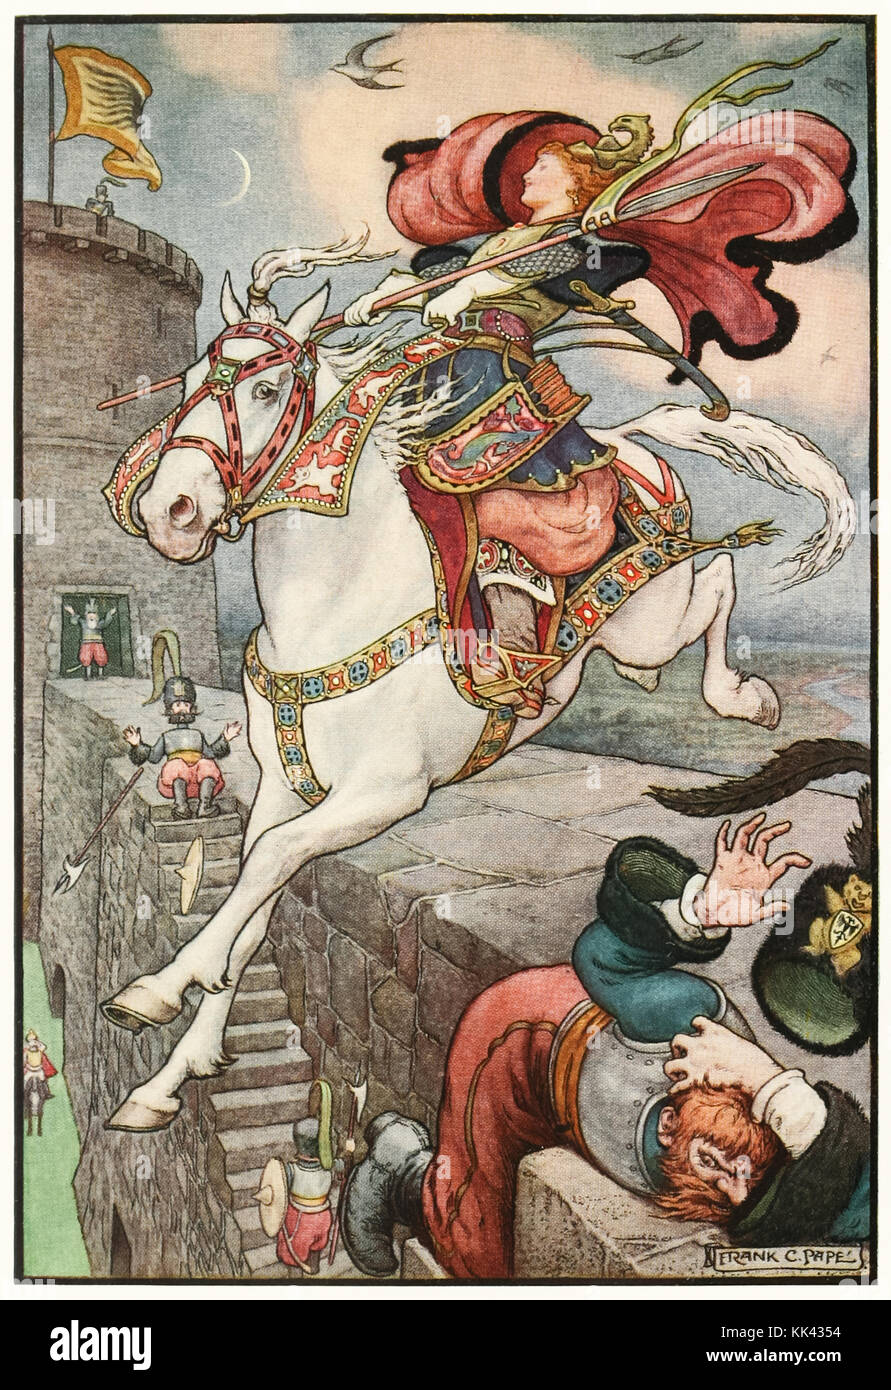 'She put her good steed to the walls and leapt lightly over them' from 'The Russian Story Book' by Richard Wilson - Stock Image